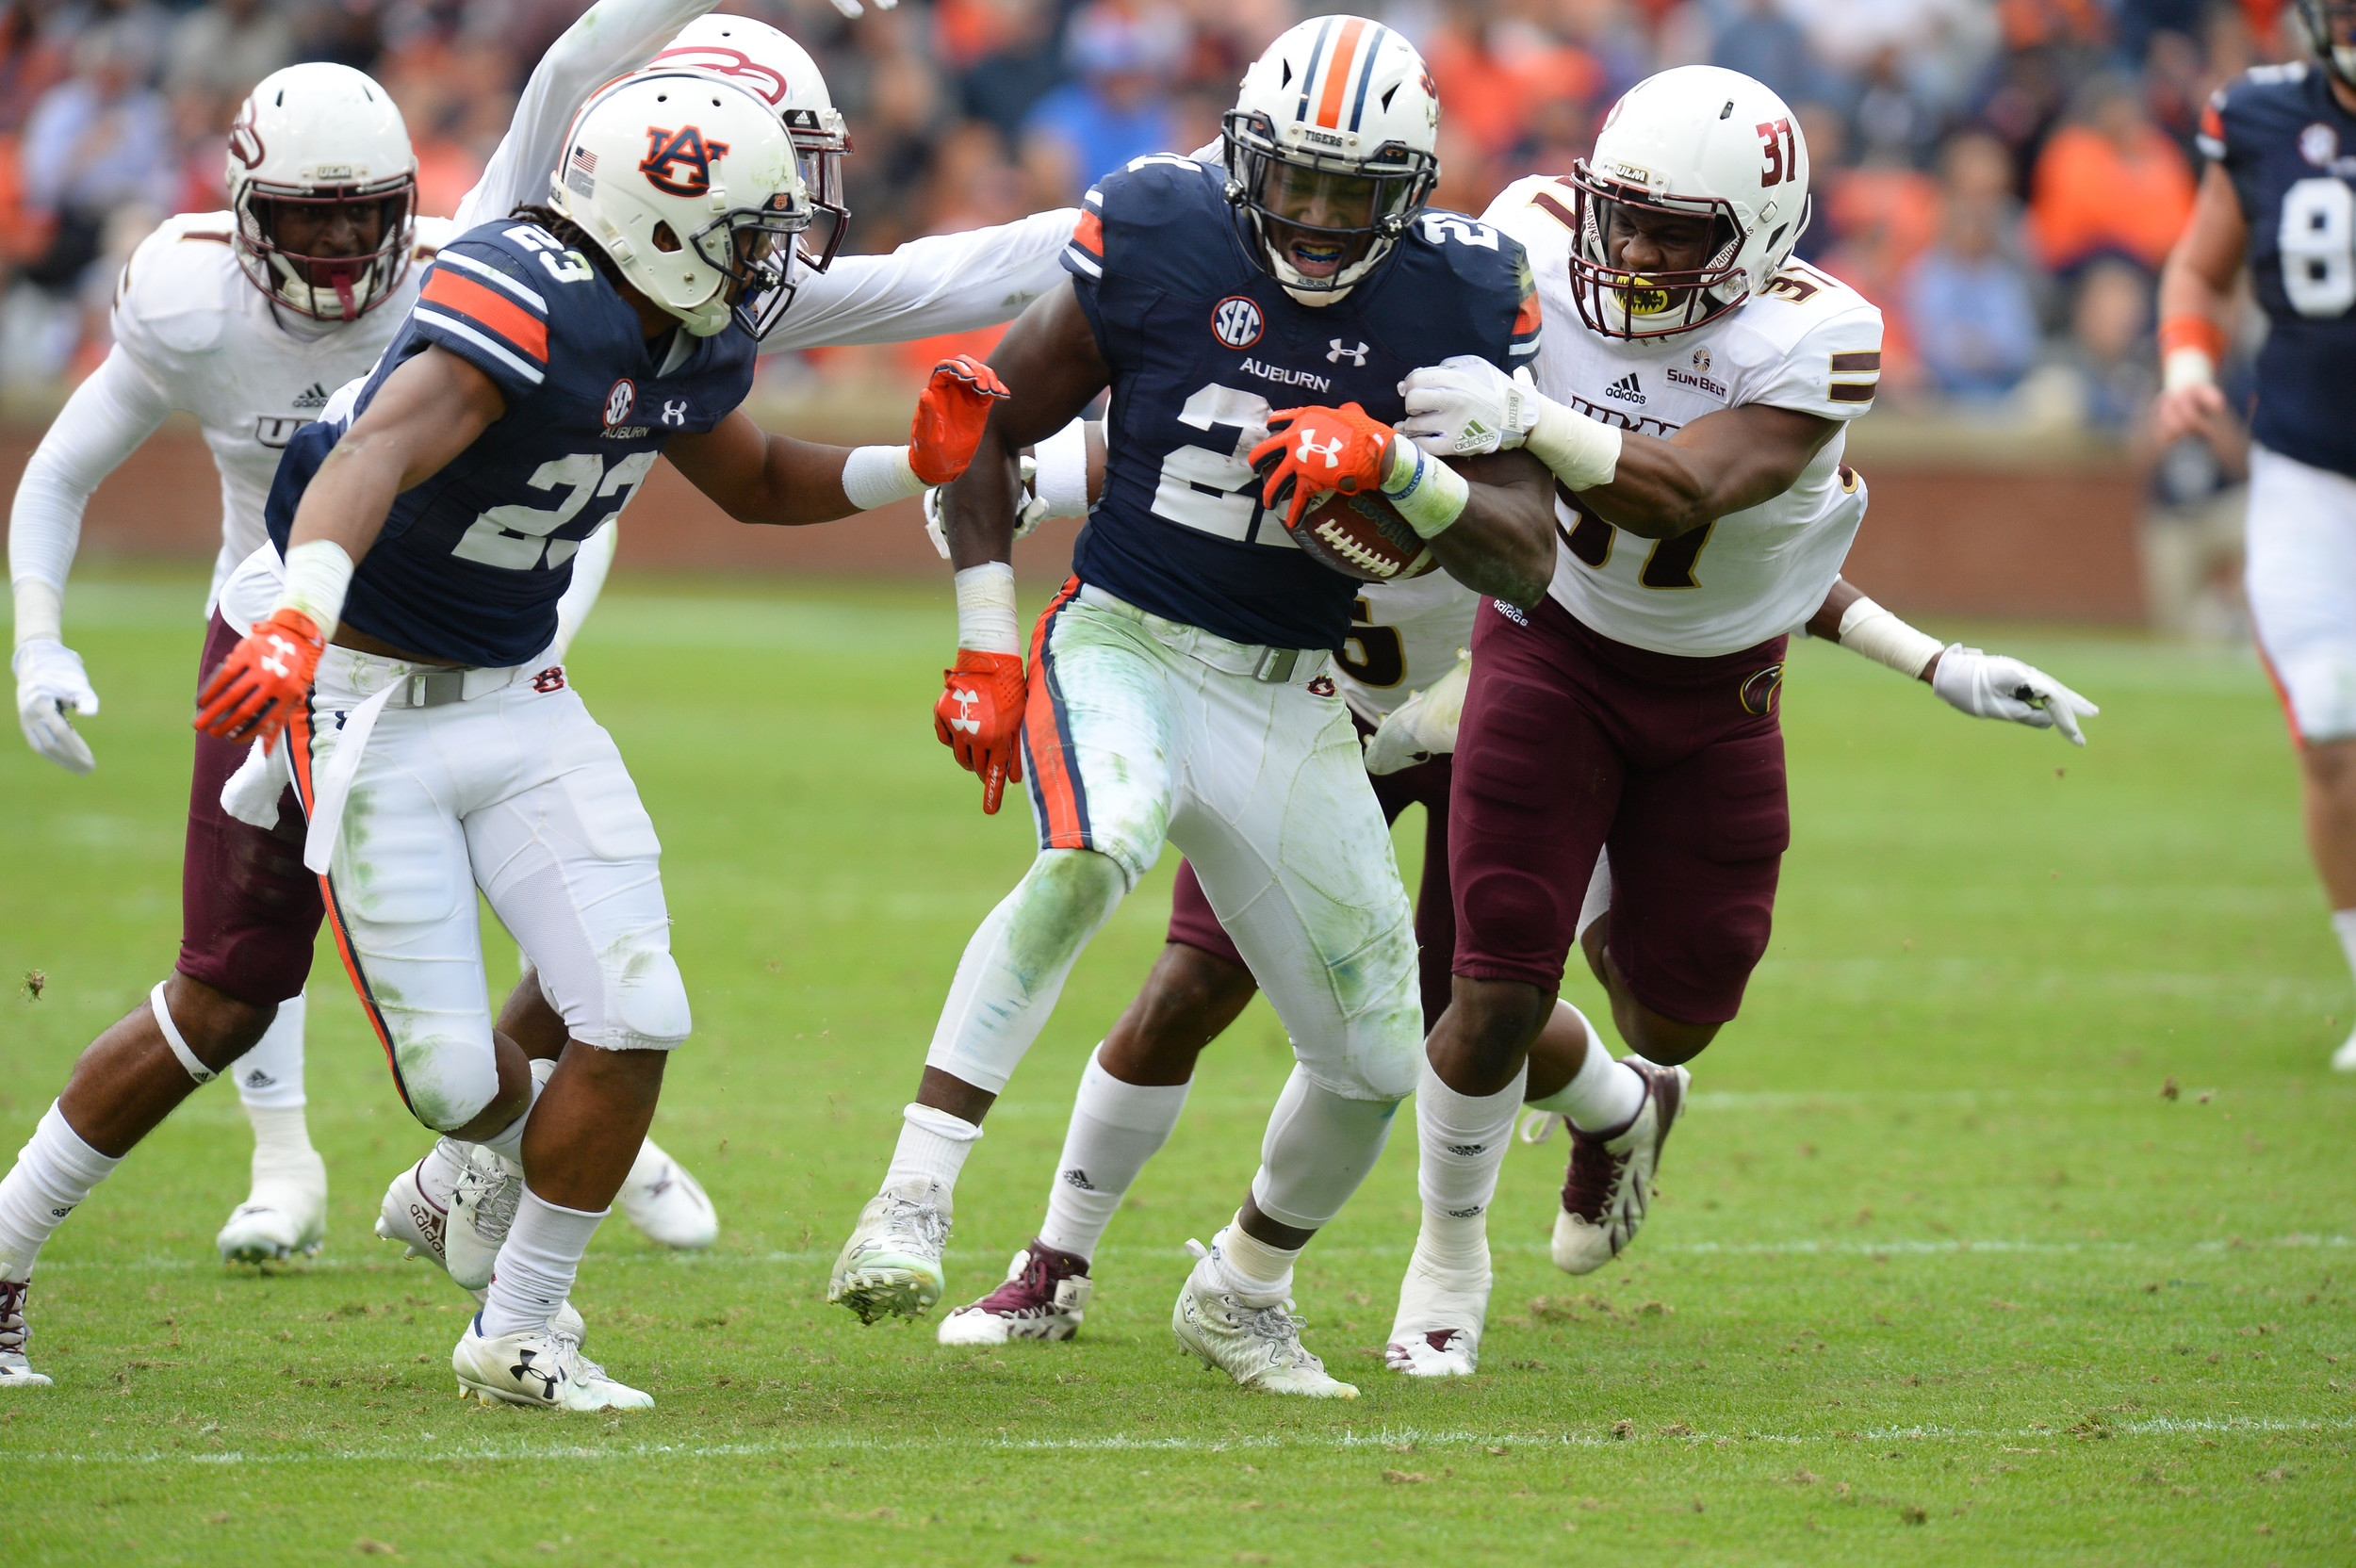 Auburn Tigers running back Kerryon Johnson (21) is tackled by Louisiana Monroe Warhawks safety Traveion Webster (37) during the second half of Saturday's game, at Jordan-Hare Stadium.